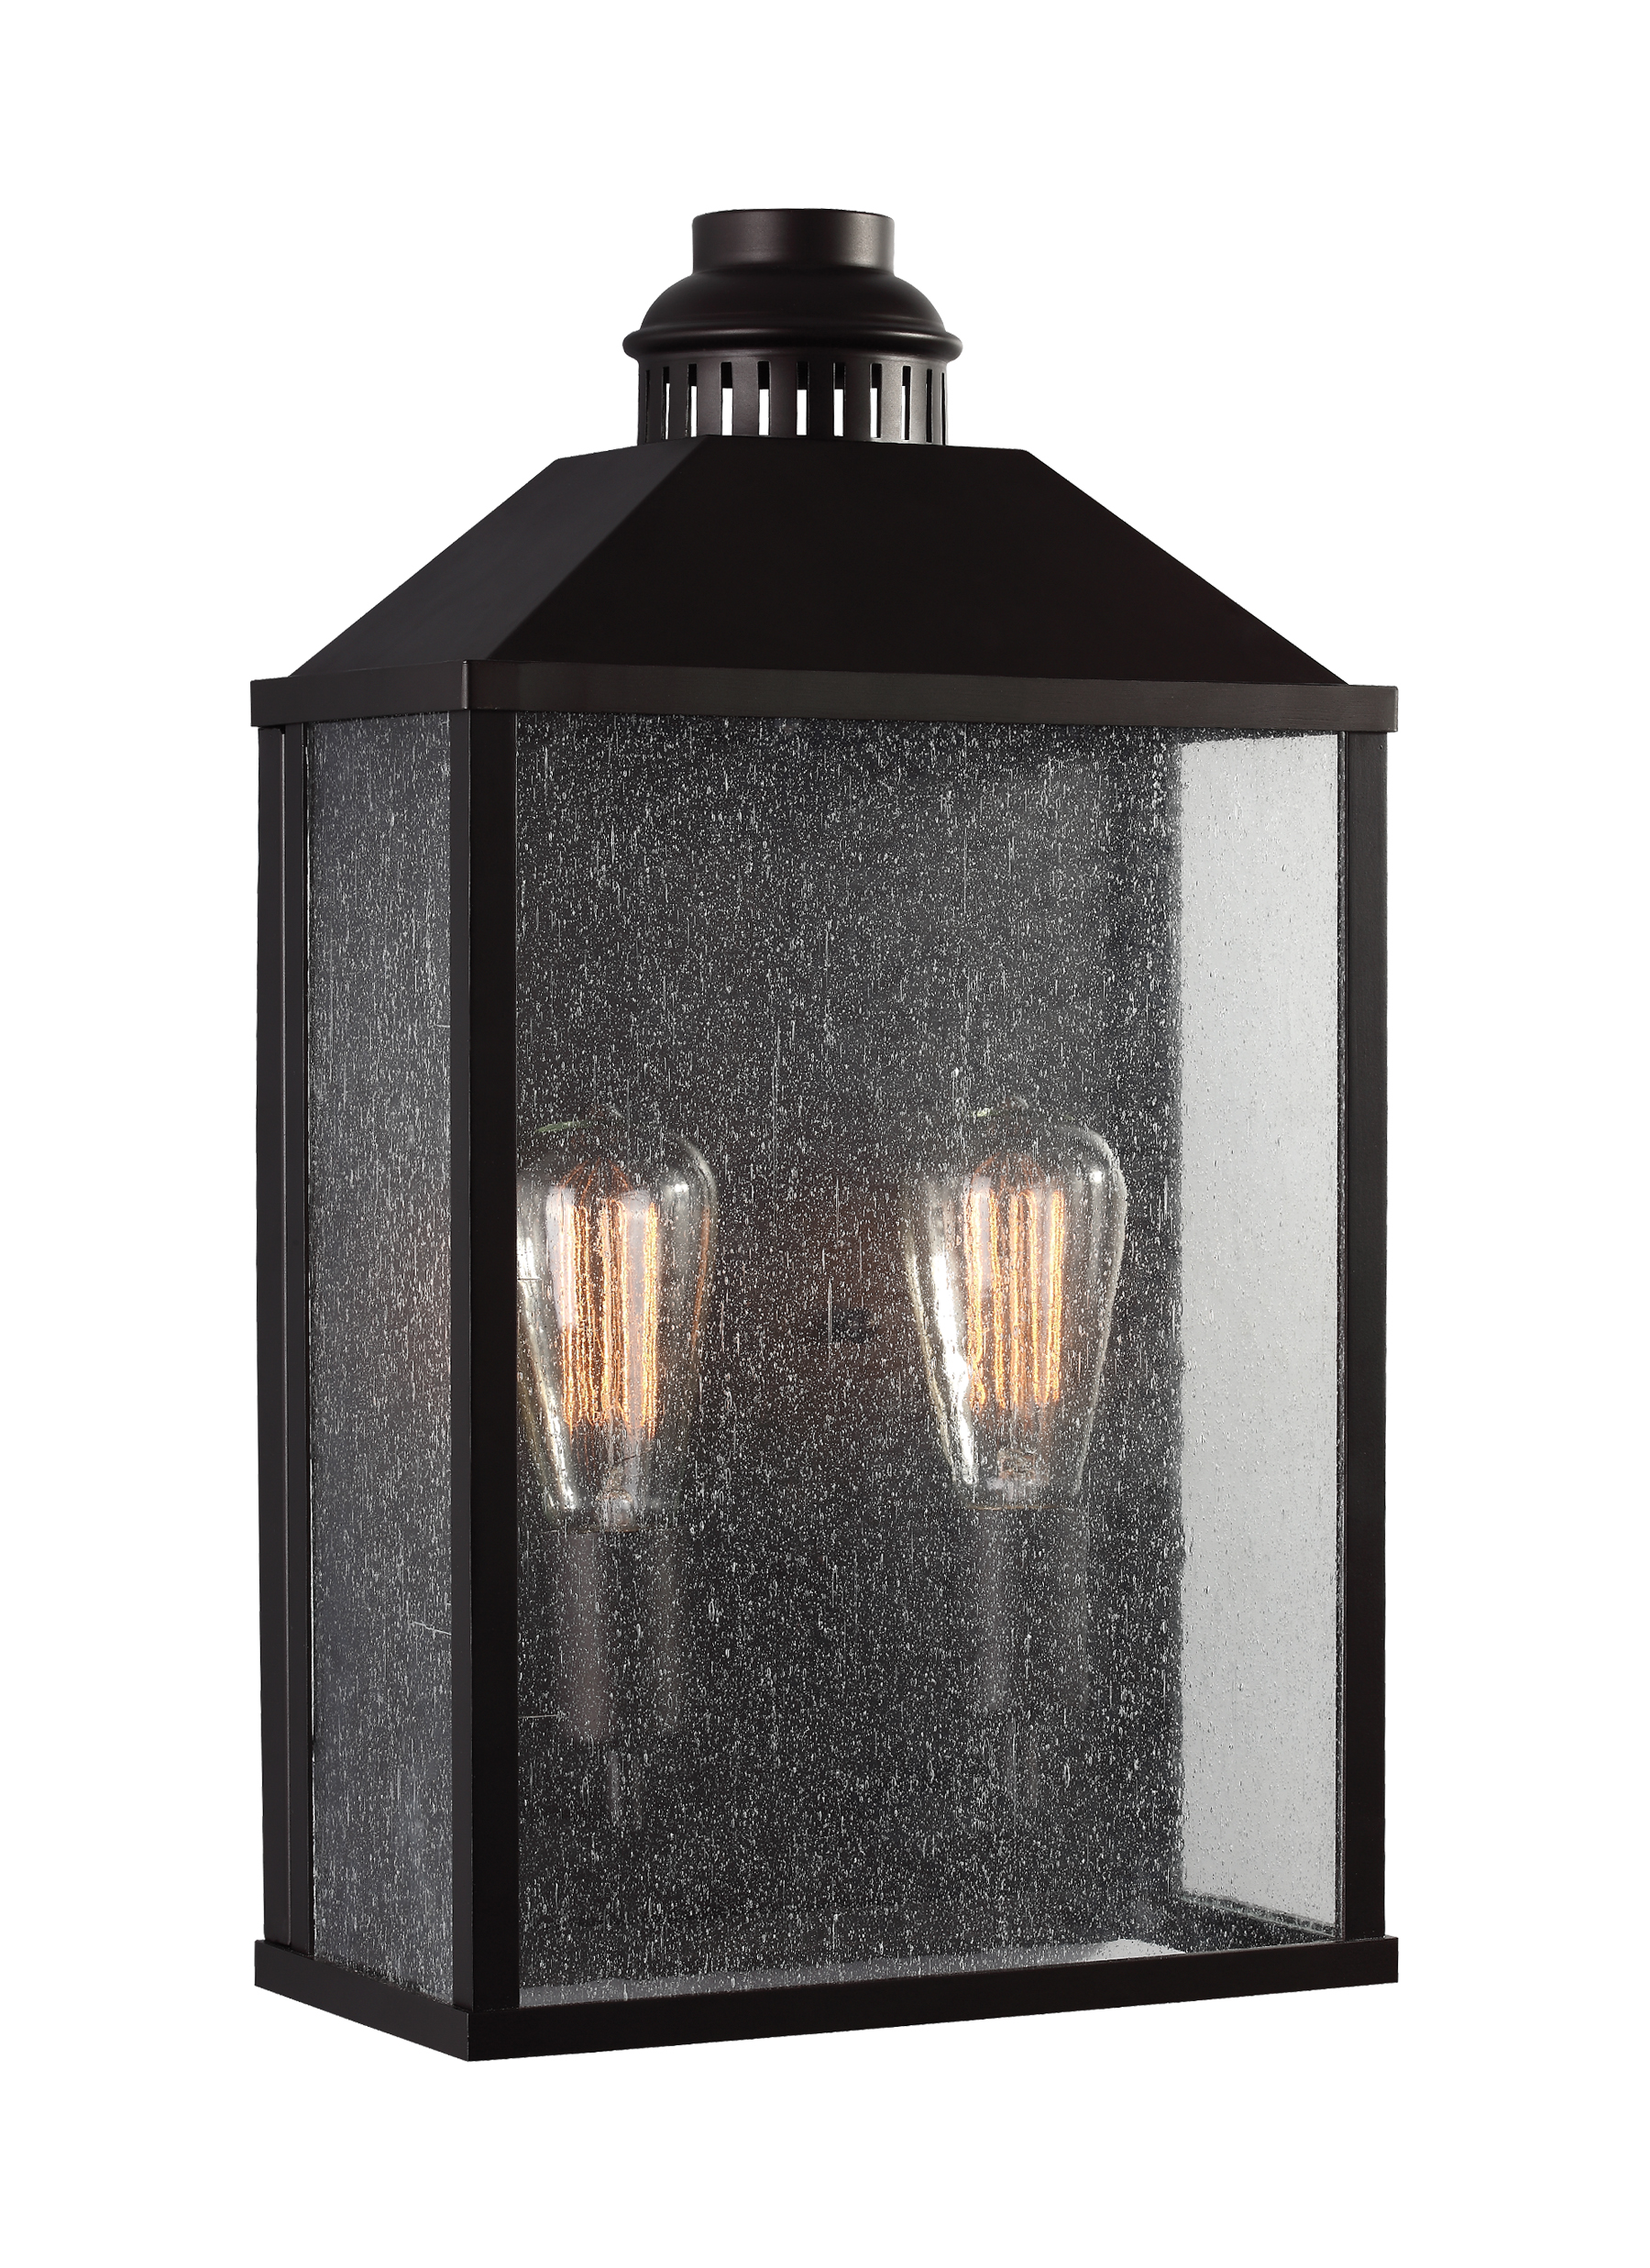 2 Light Outdoor Wall Sconce Loading Zoom